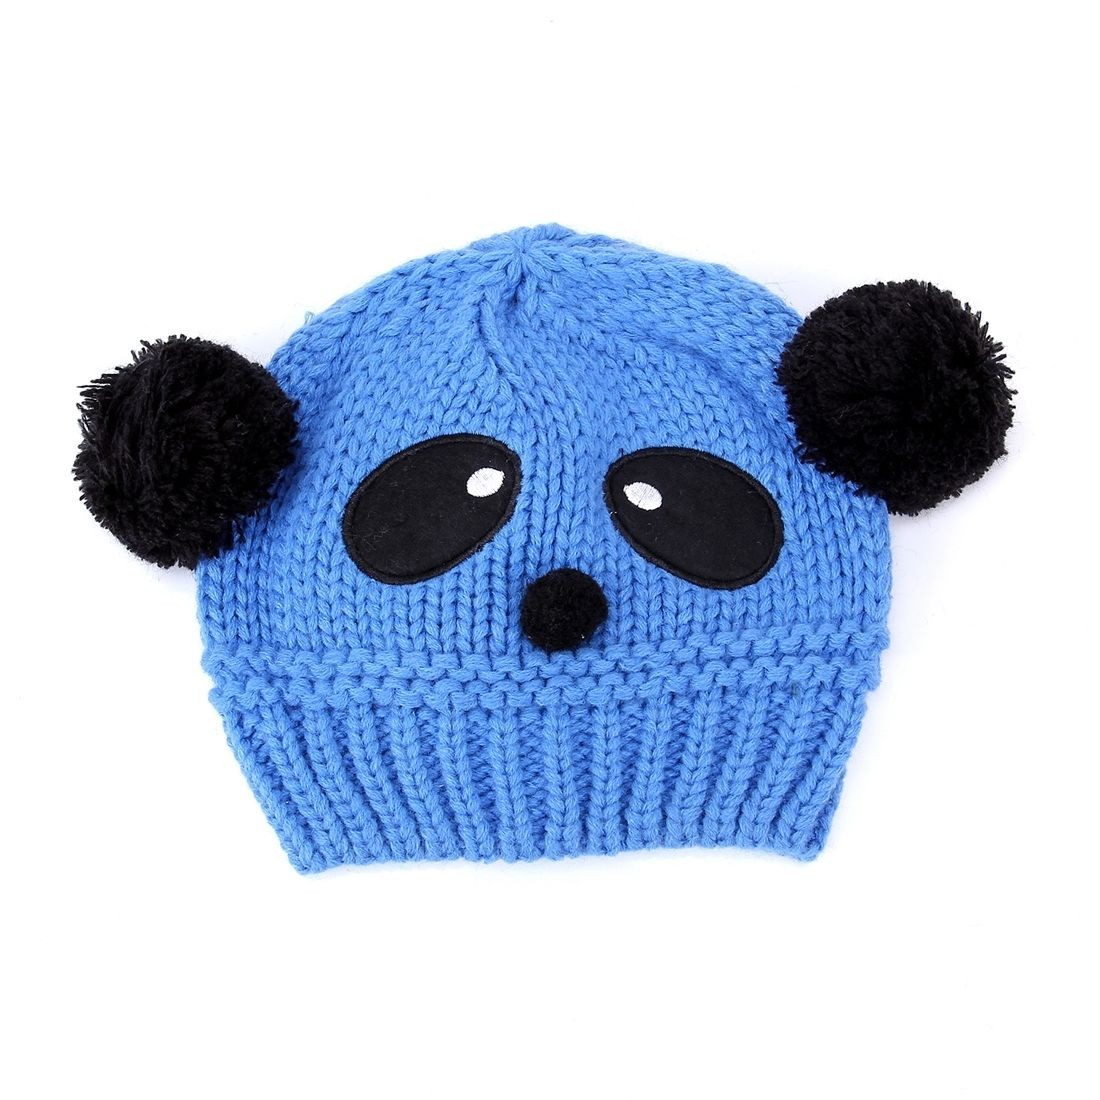 New Cute Baby Boys Girls Kid Panda Soft Knit Crochet Hat Winter Warm Beanie